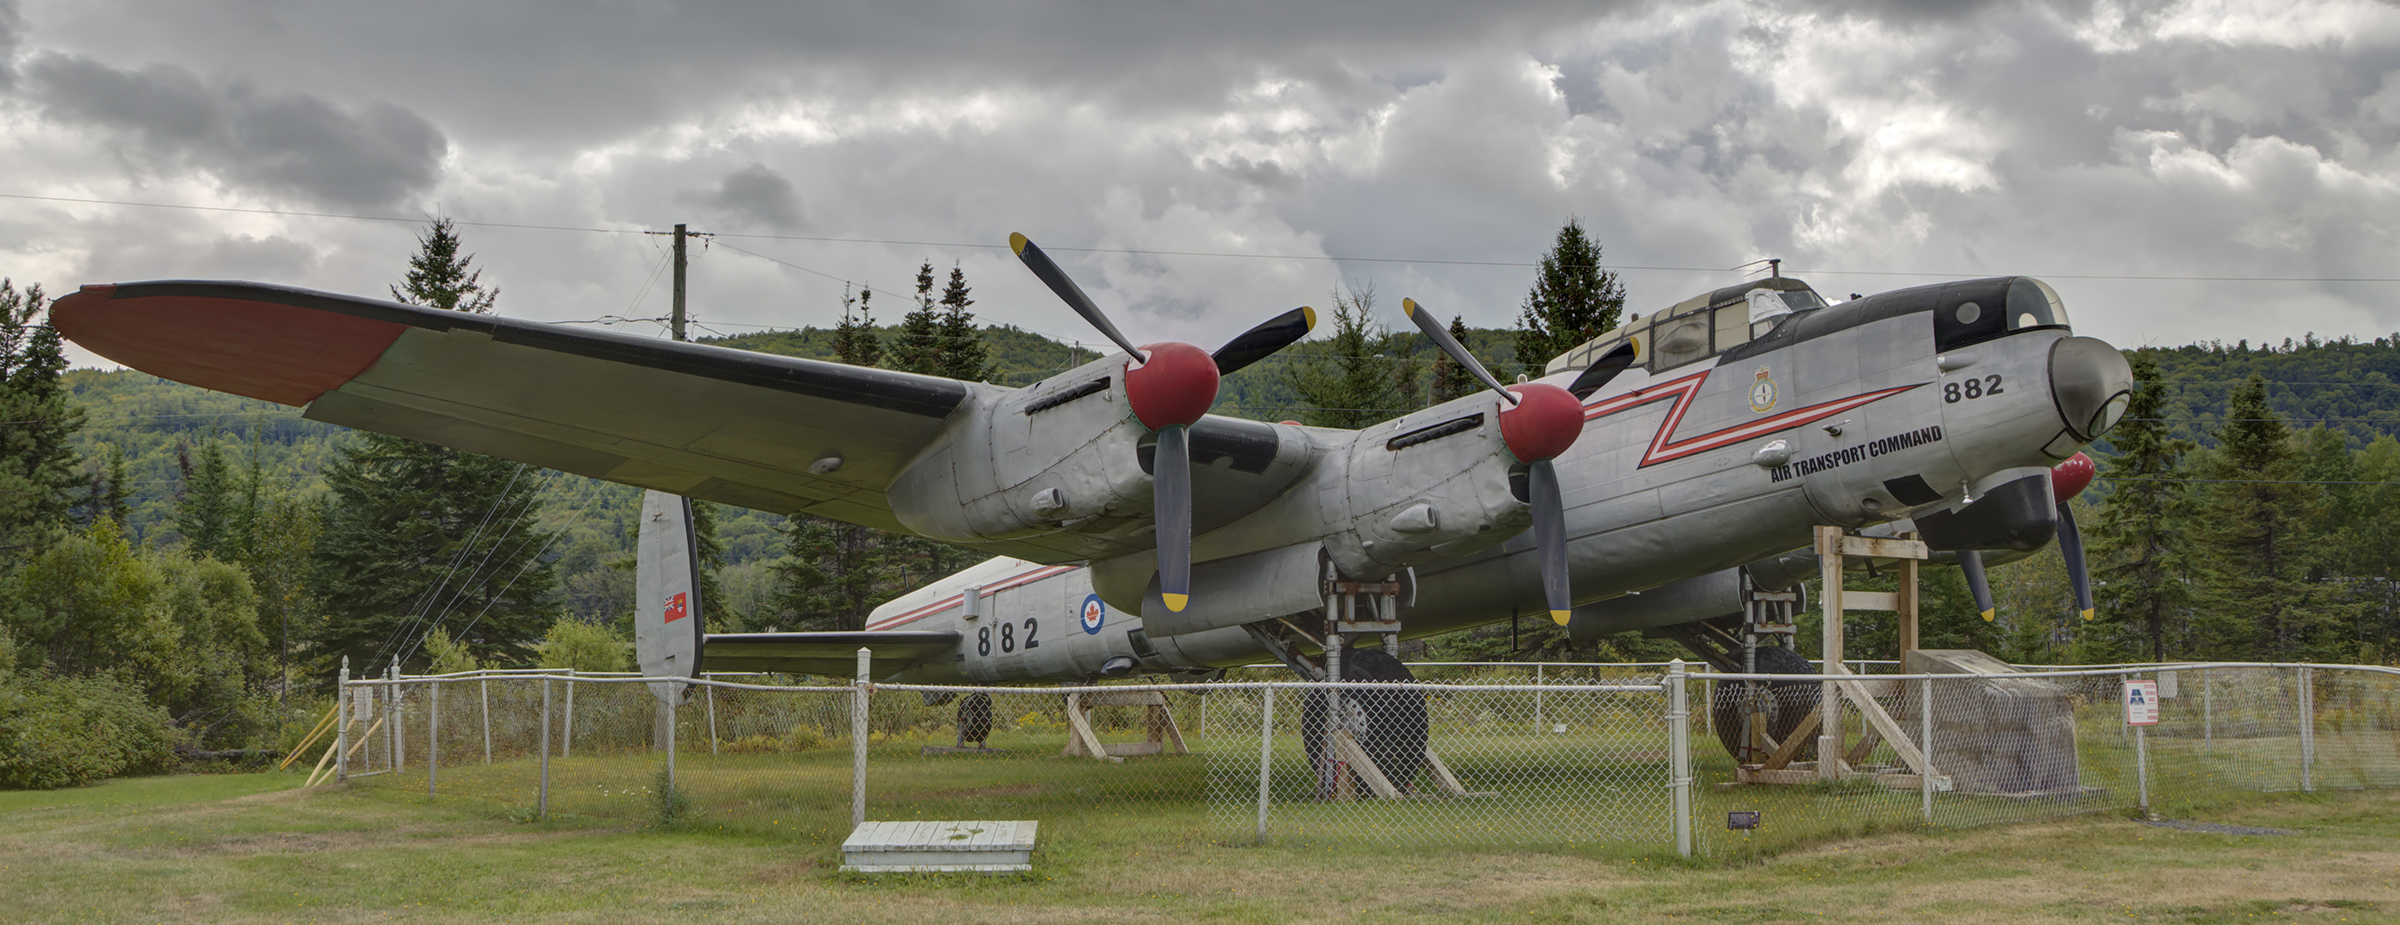 A large grey aircraft with four propellers on its wings rests on grass behind a fence.